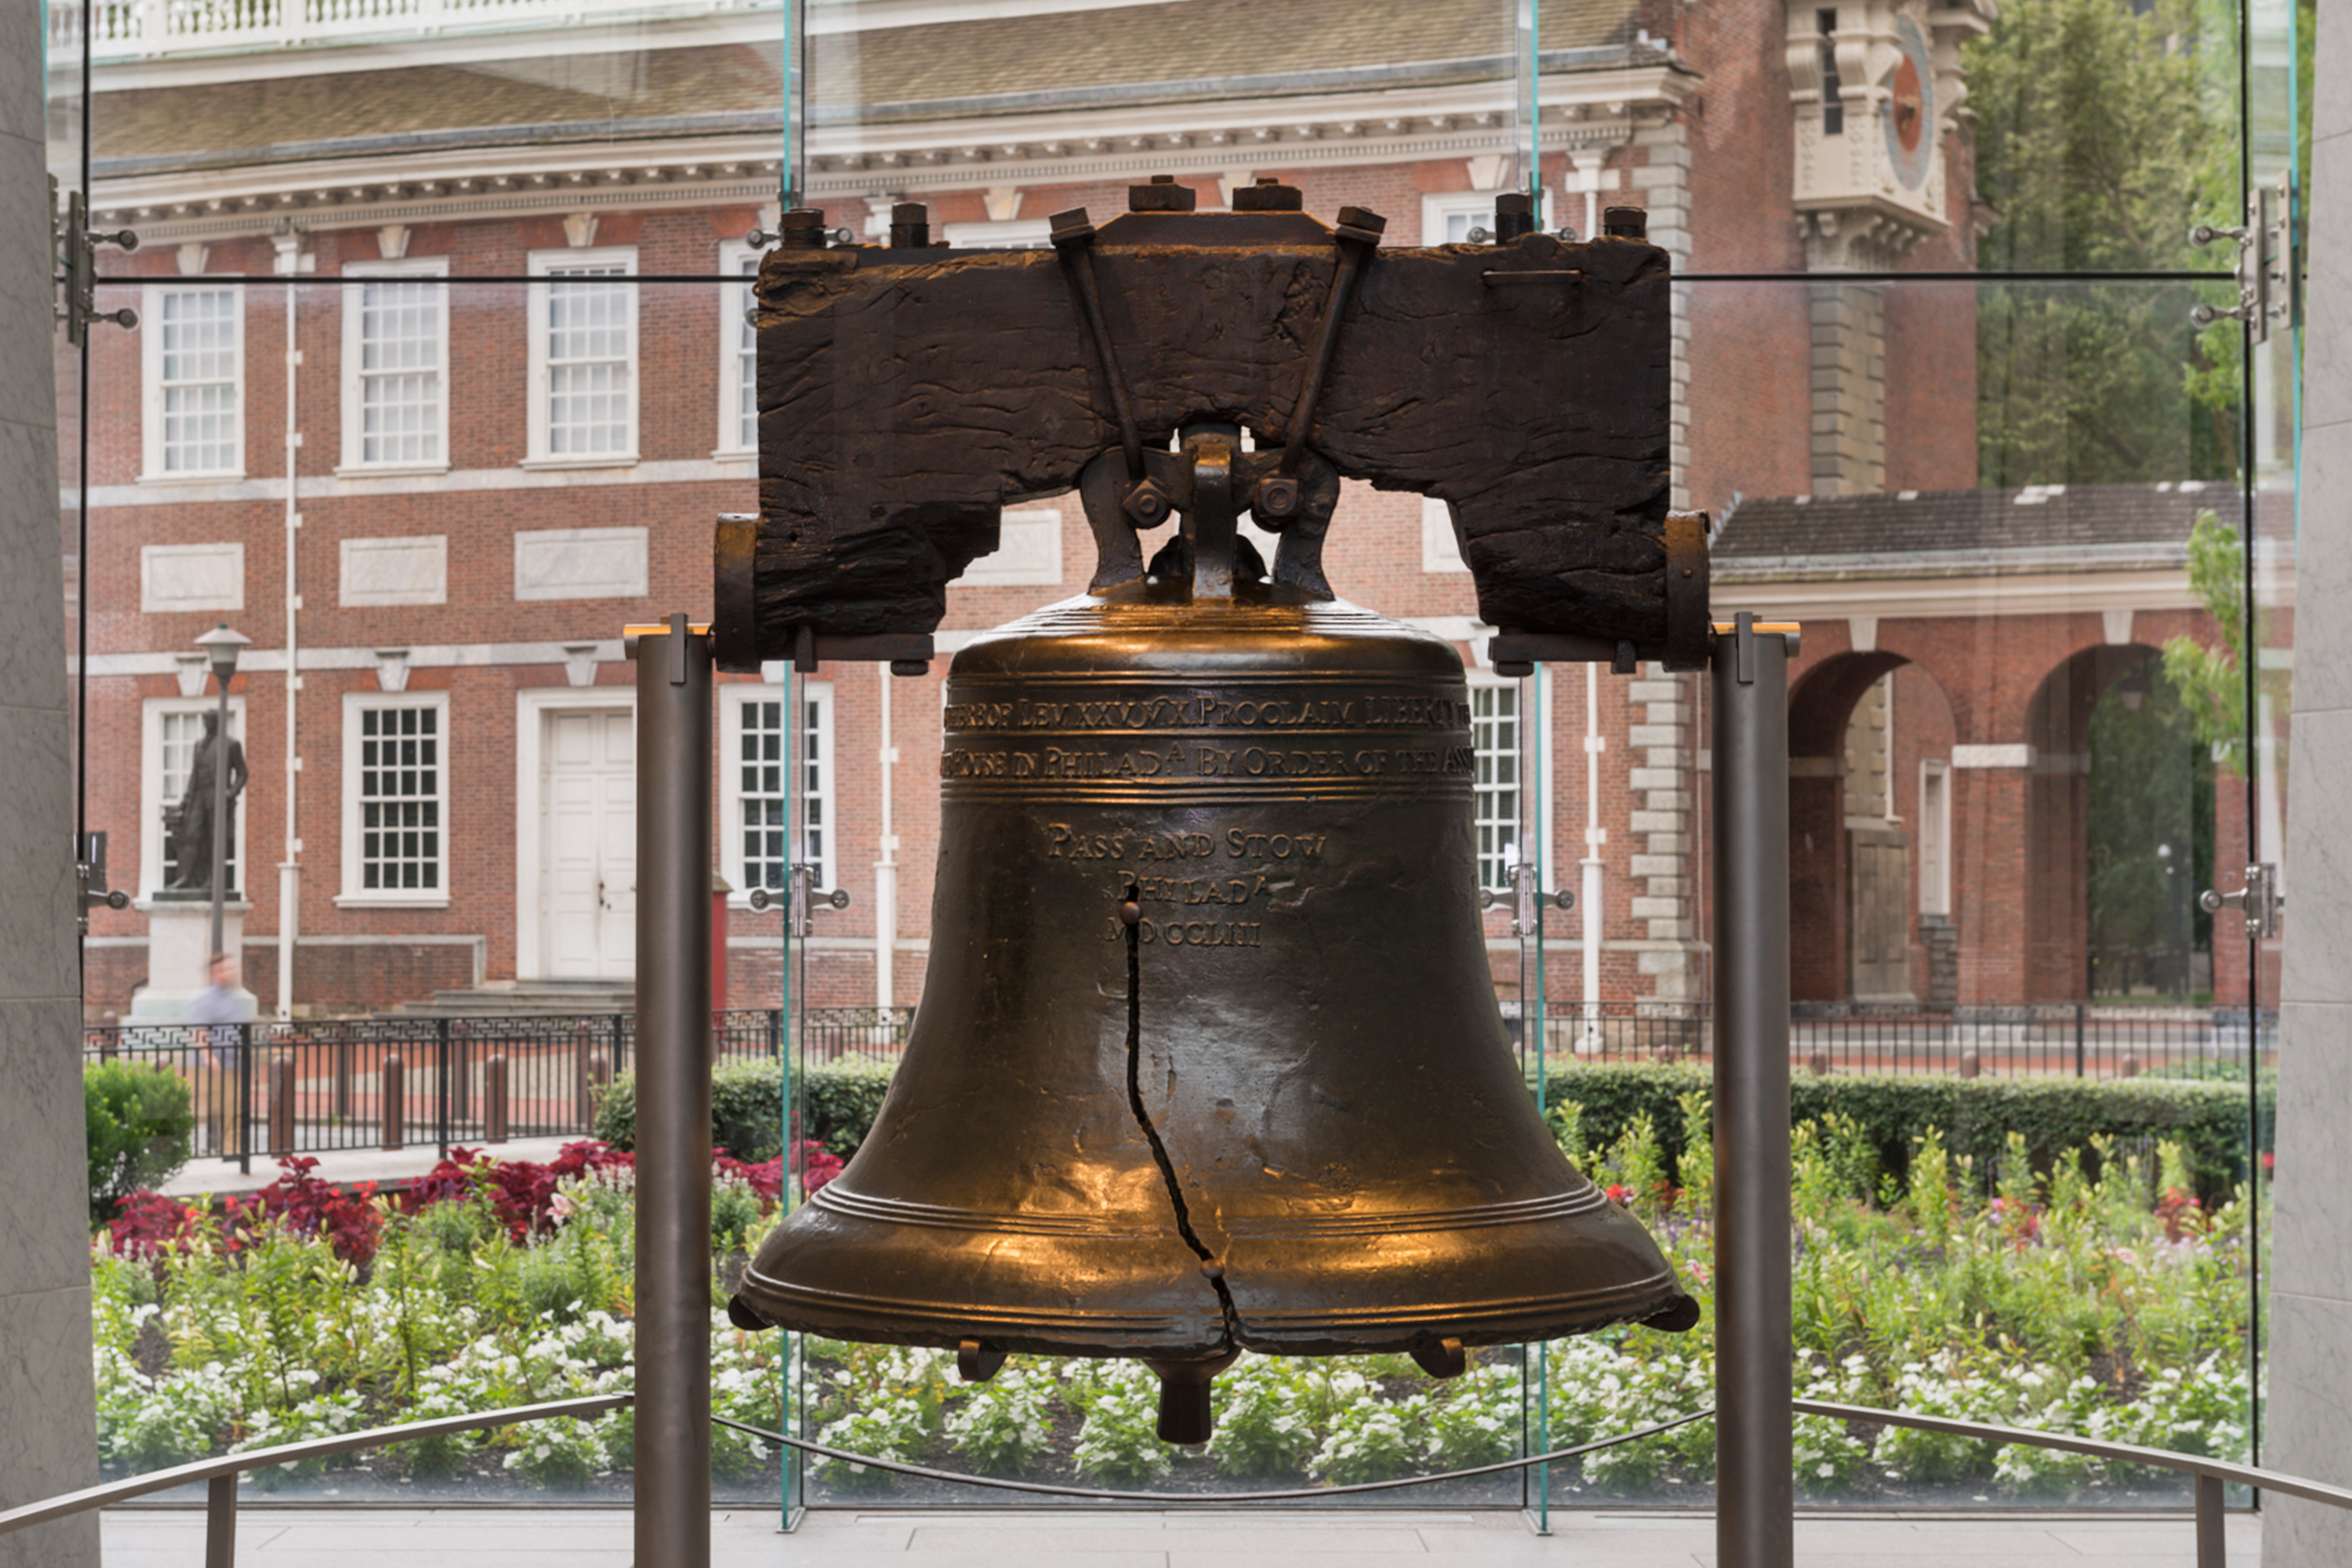 Liberty Bell_credit National Park Service